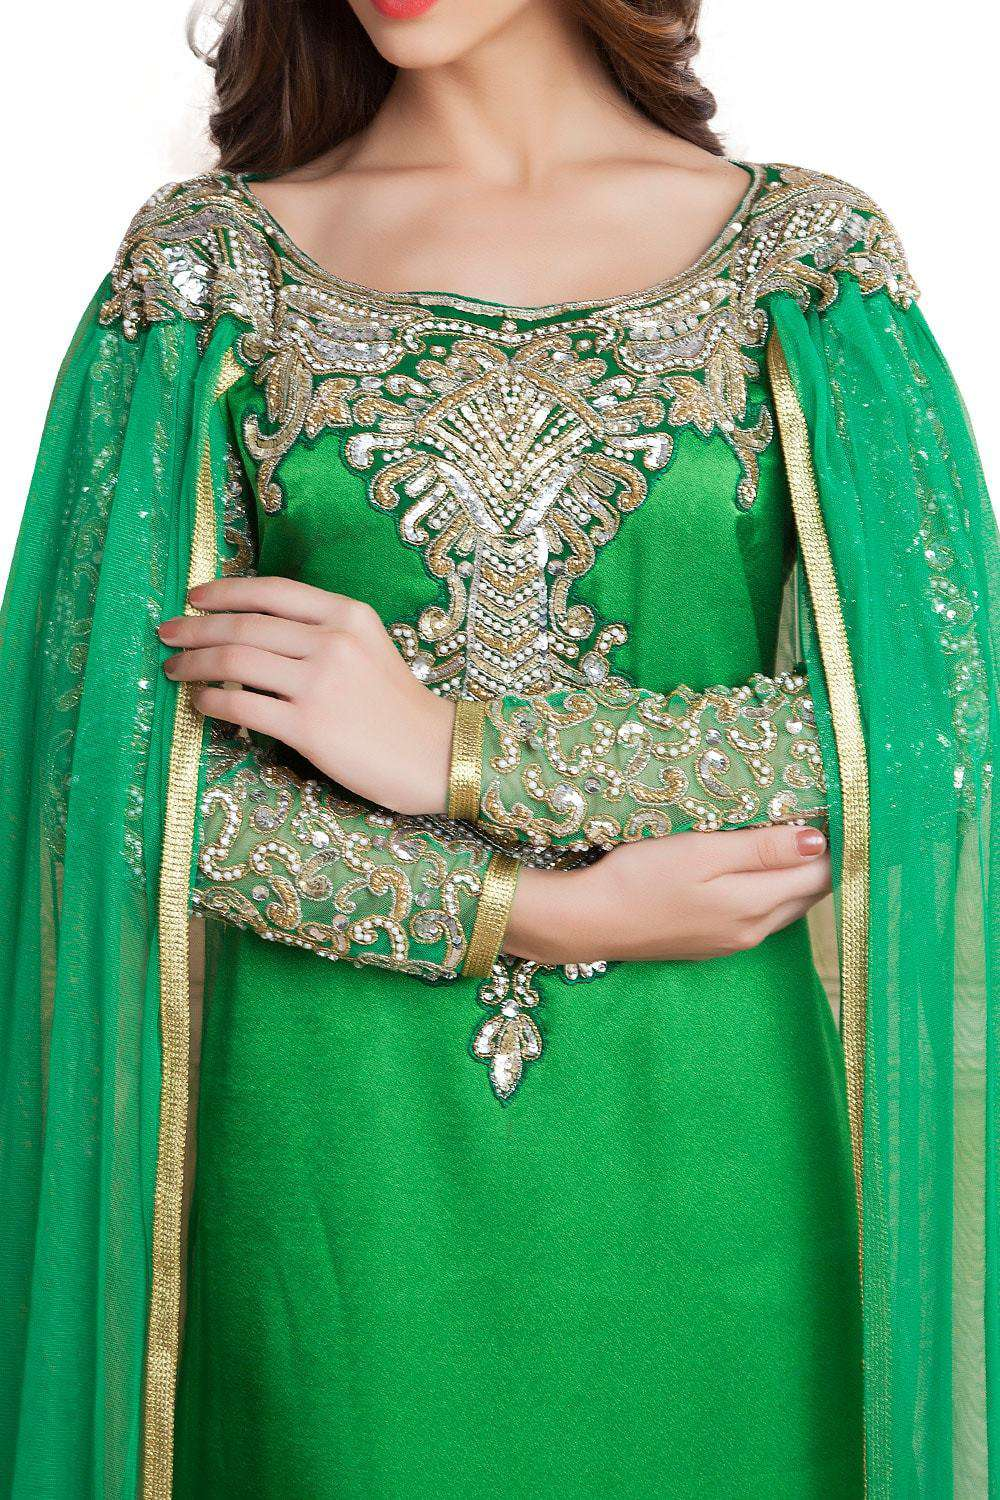 Green Color Designer Handmade Arabic Long Sleeve Wedding Islamic Dress